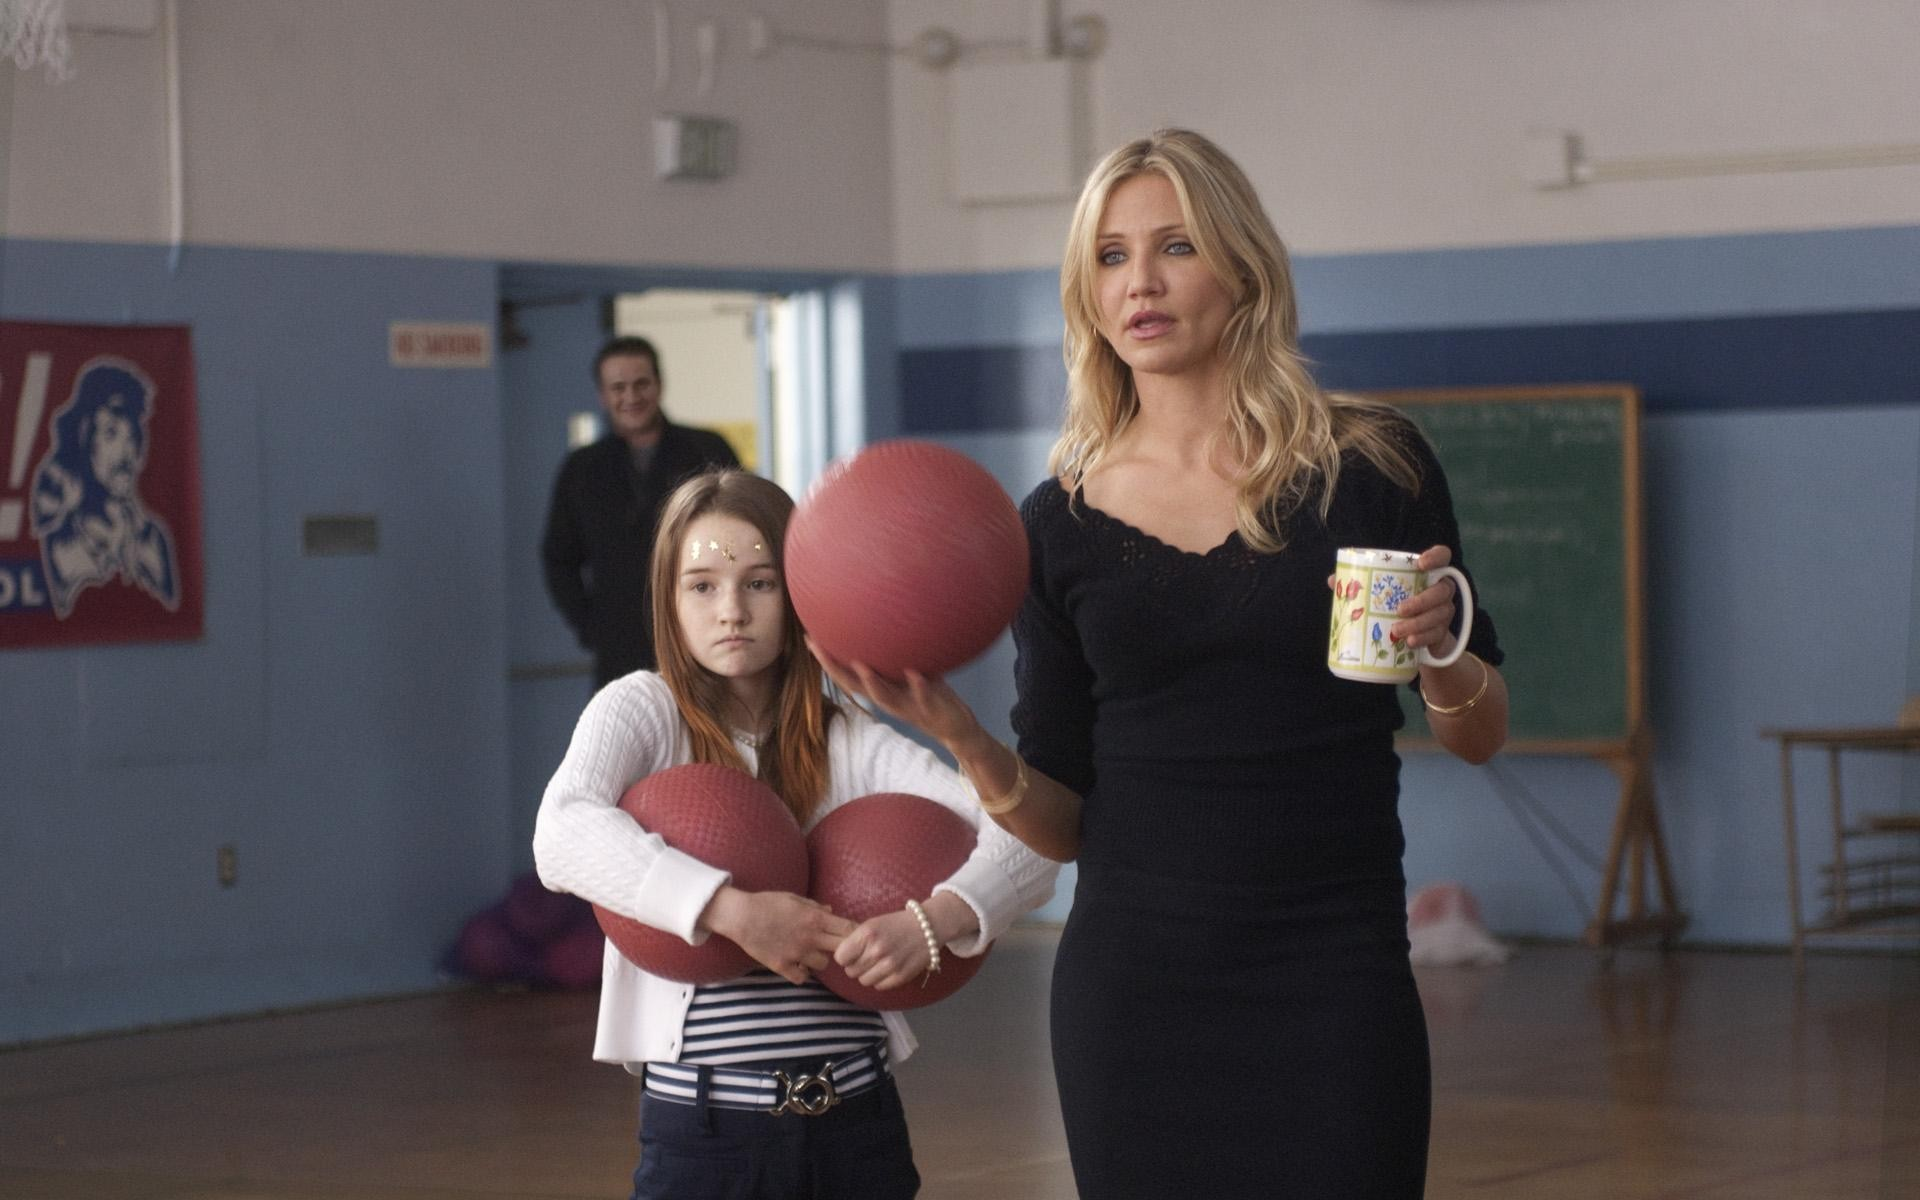 ws_bad_teacher-_dodgeball_1920x1200